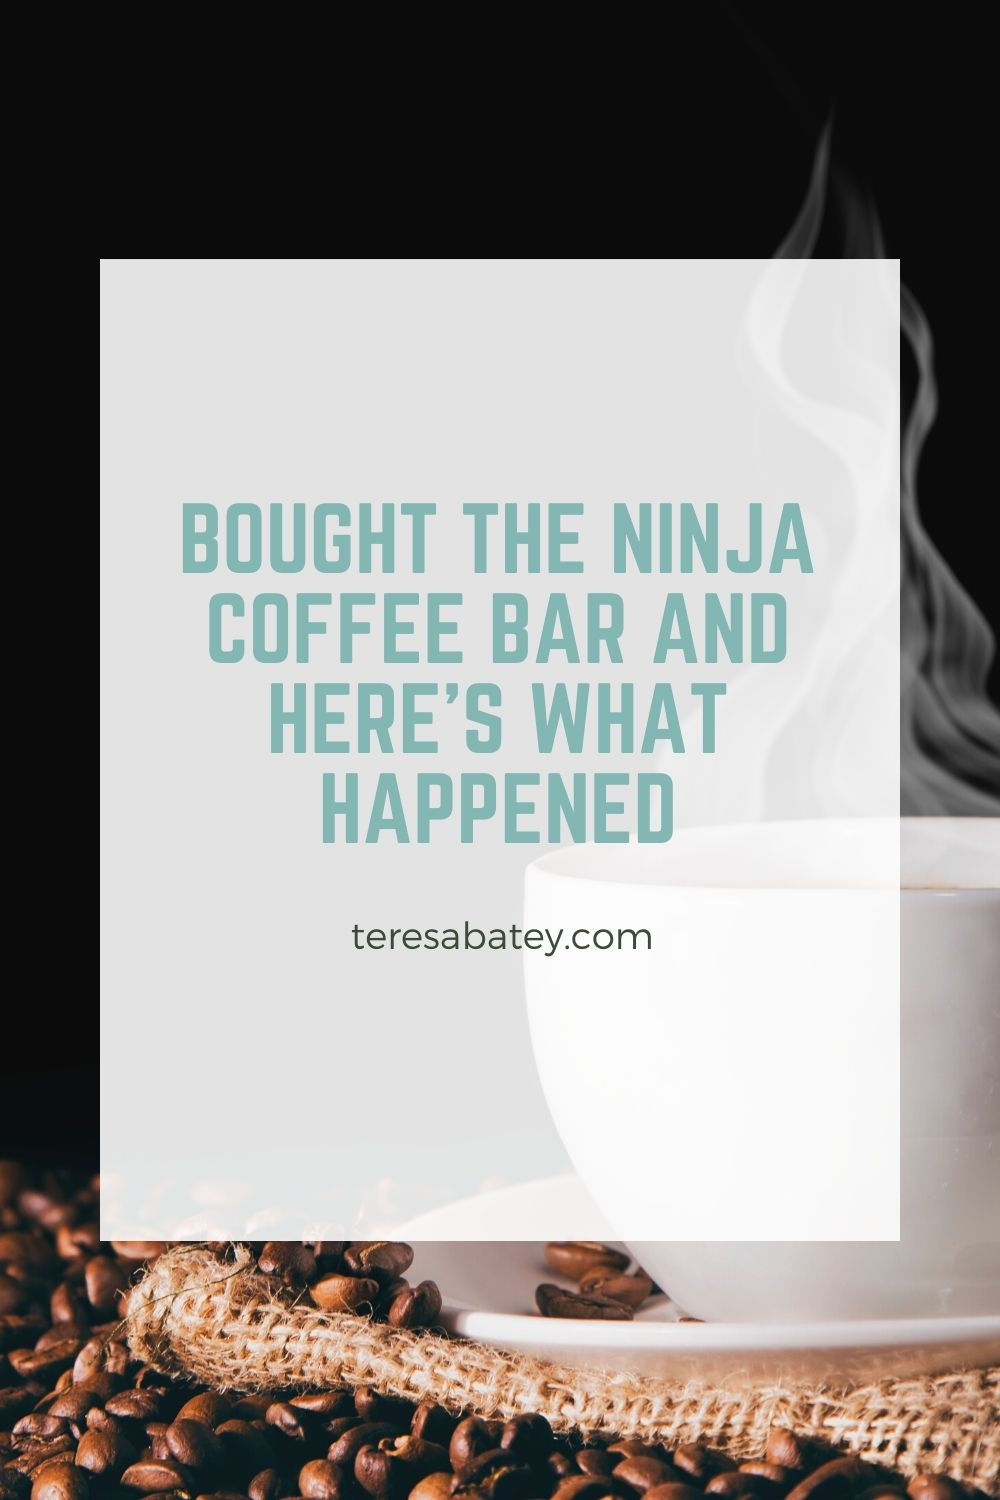 Bought the Ninja Coffee Bar and Here's What Happened